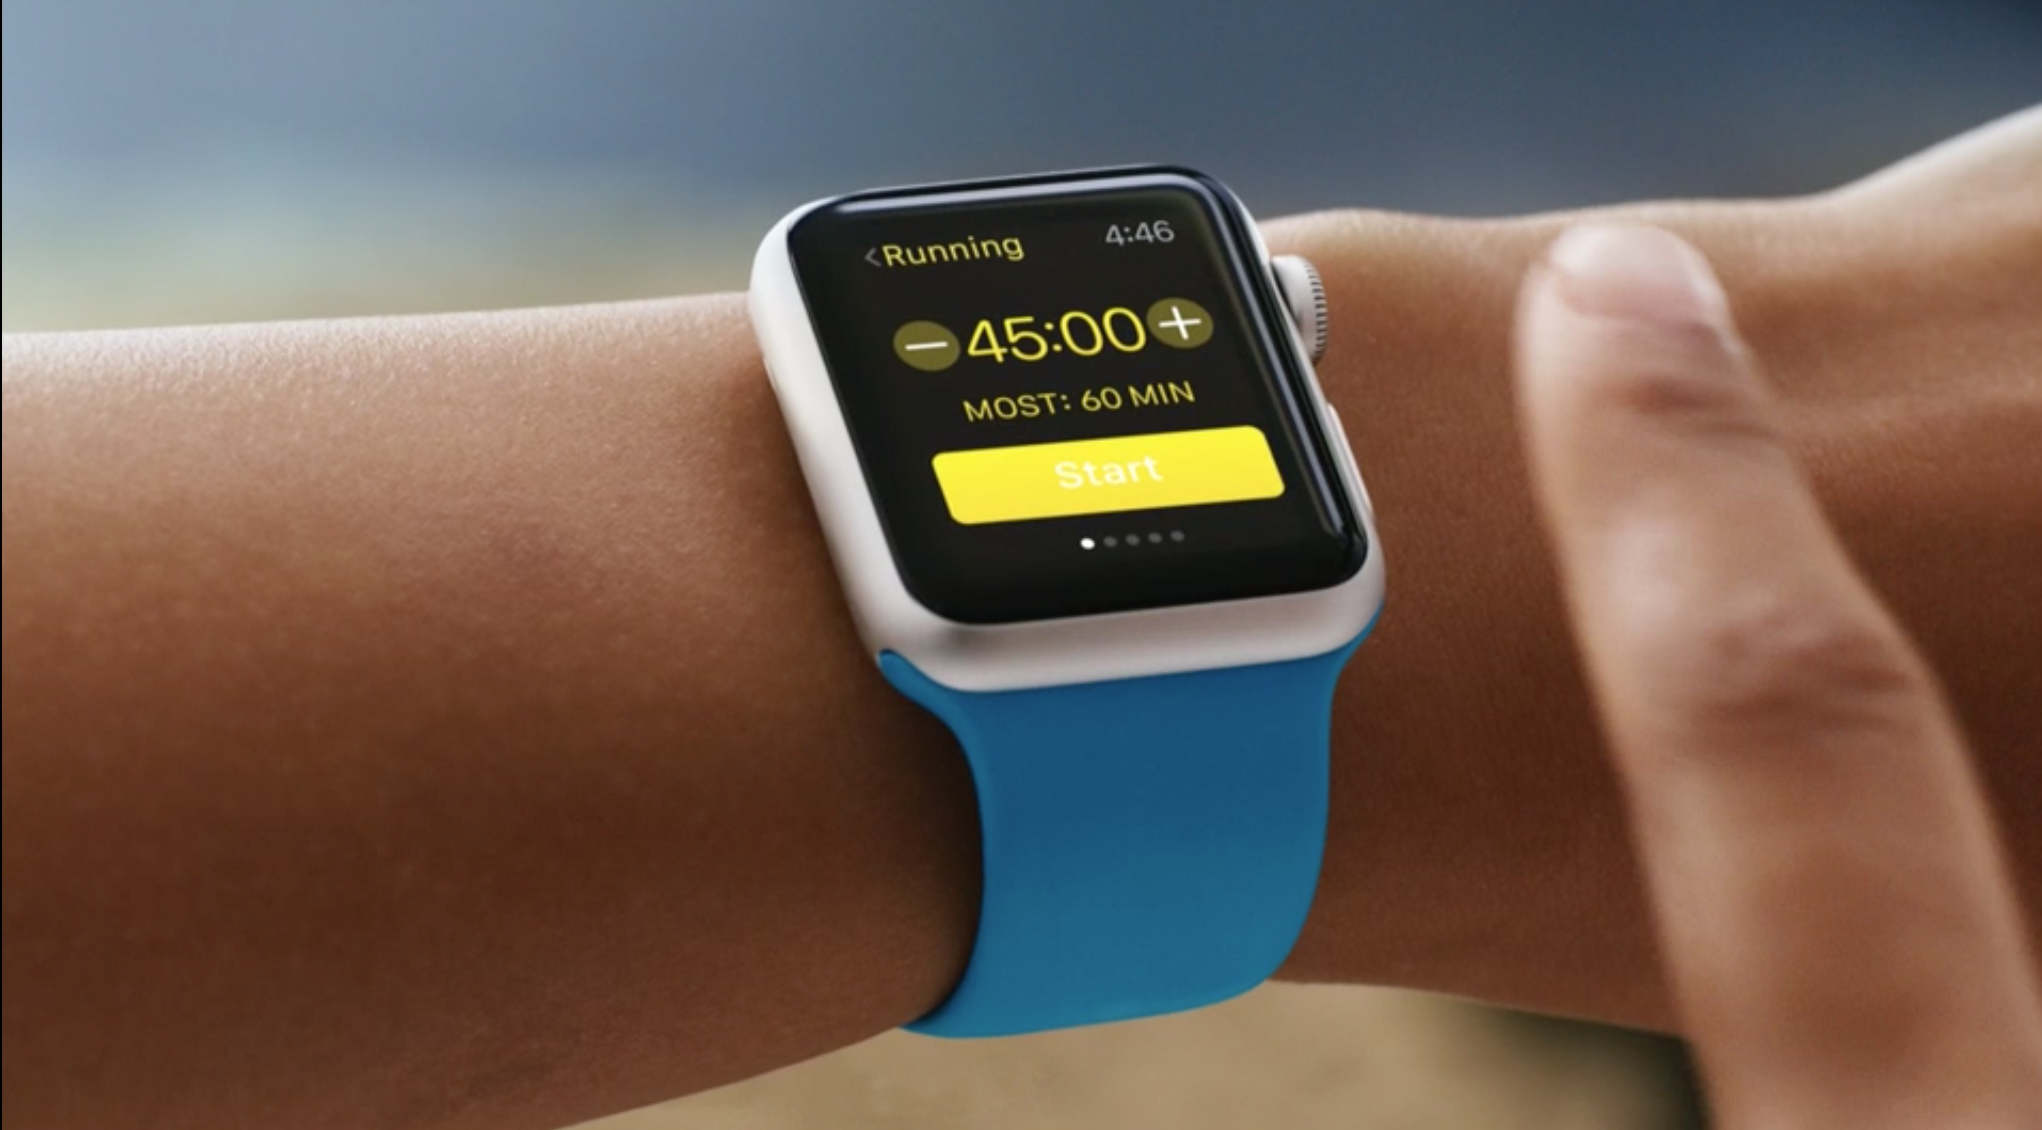 Every Fitness Tracker Except The Apple Watch Has Privacy Problems